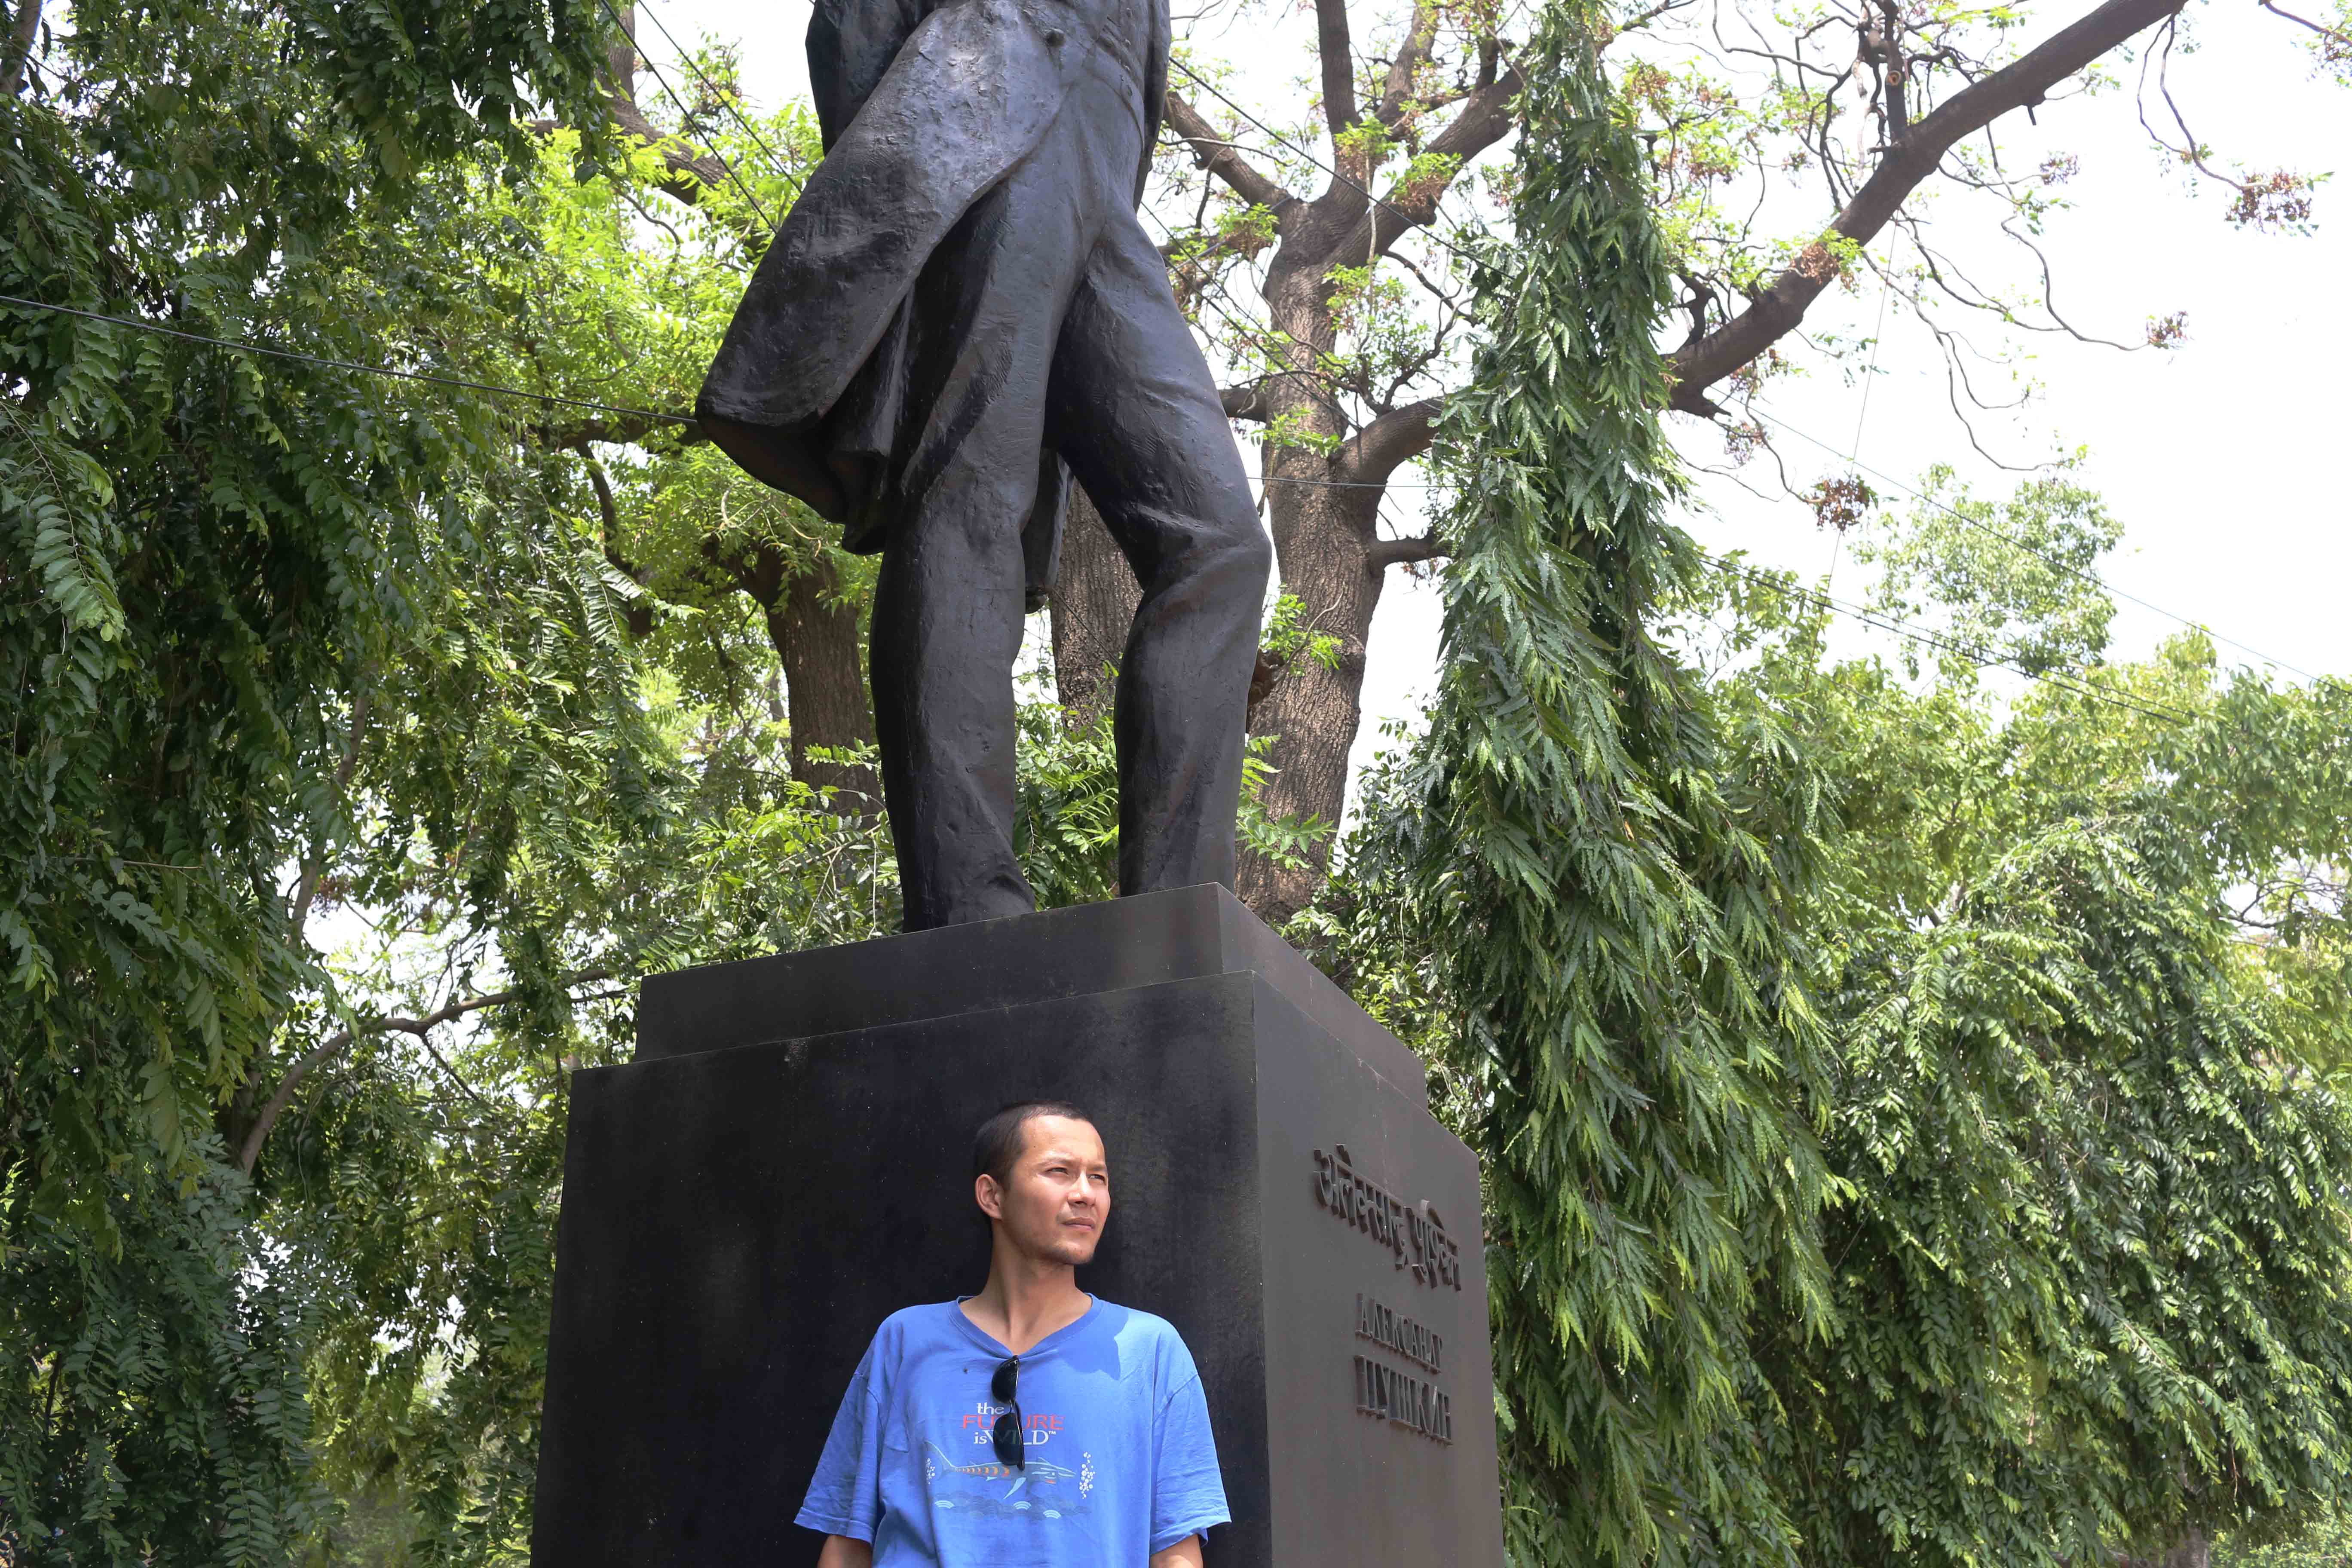 Delhi's Bandaged Heart – Ishan Marvel & Aleksandr Pushkin, Mandi House